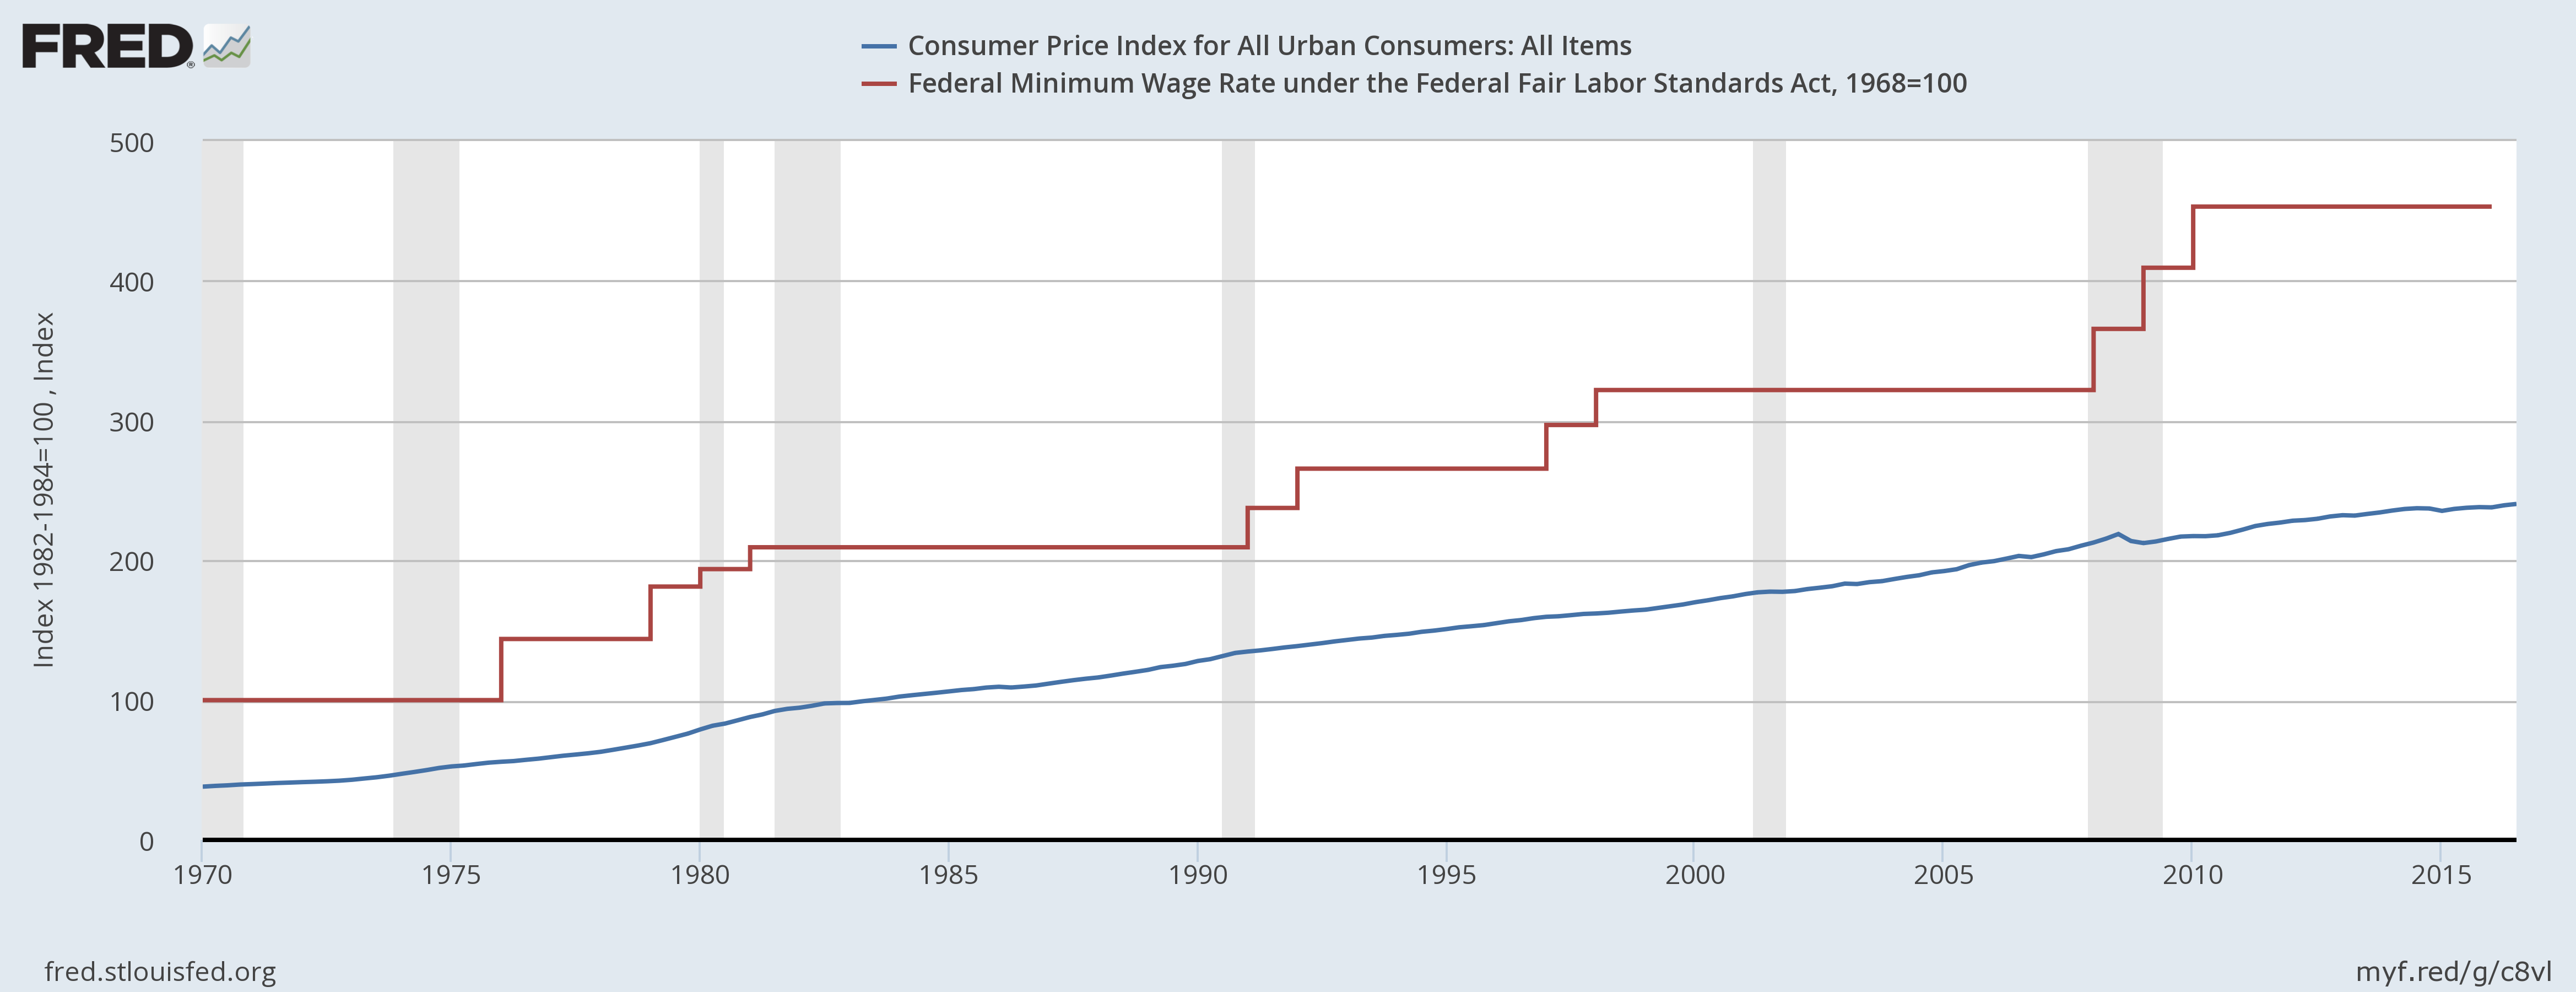 FRED graph comparing Consumer Price Index and Federal Minimum Wage Rate